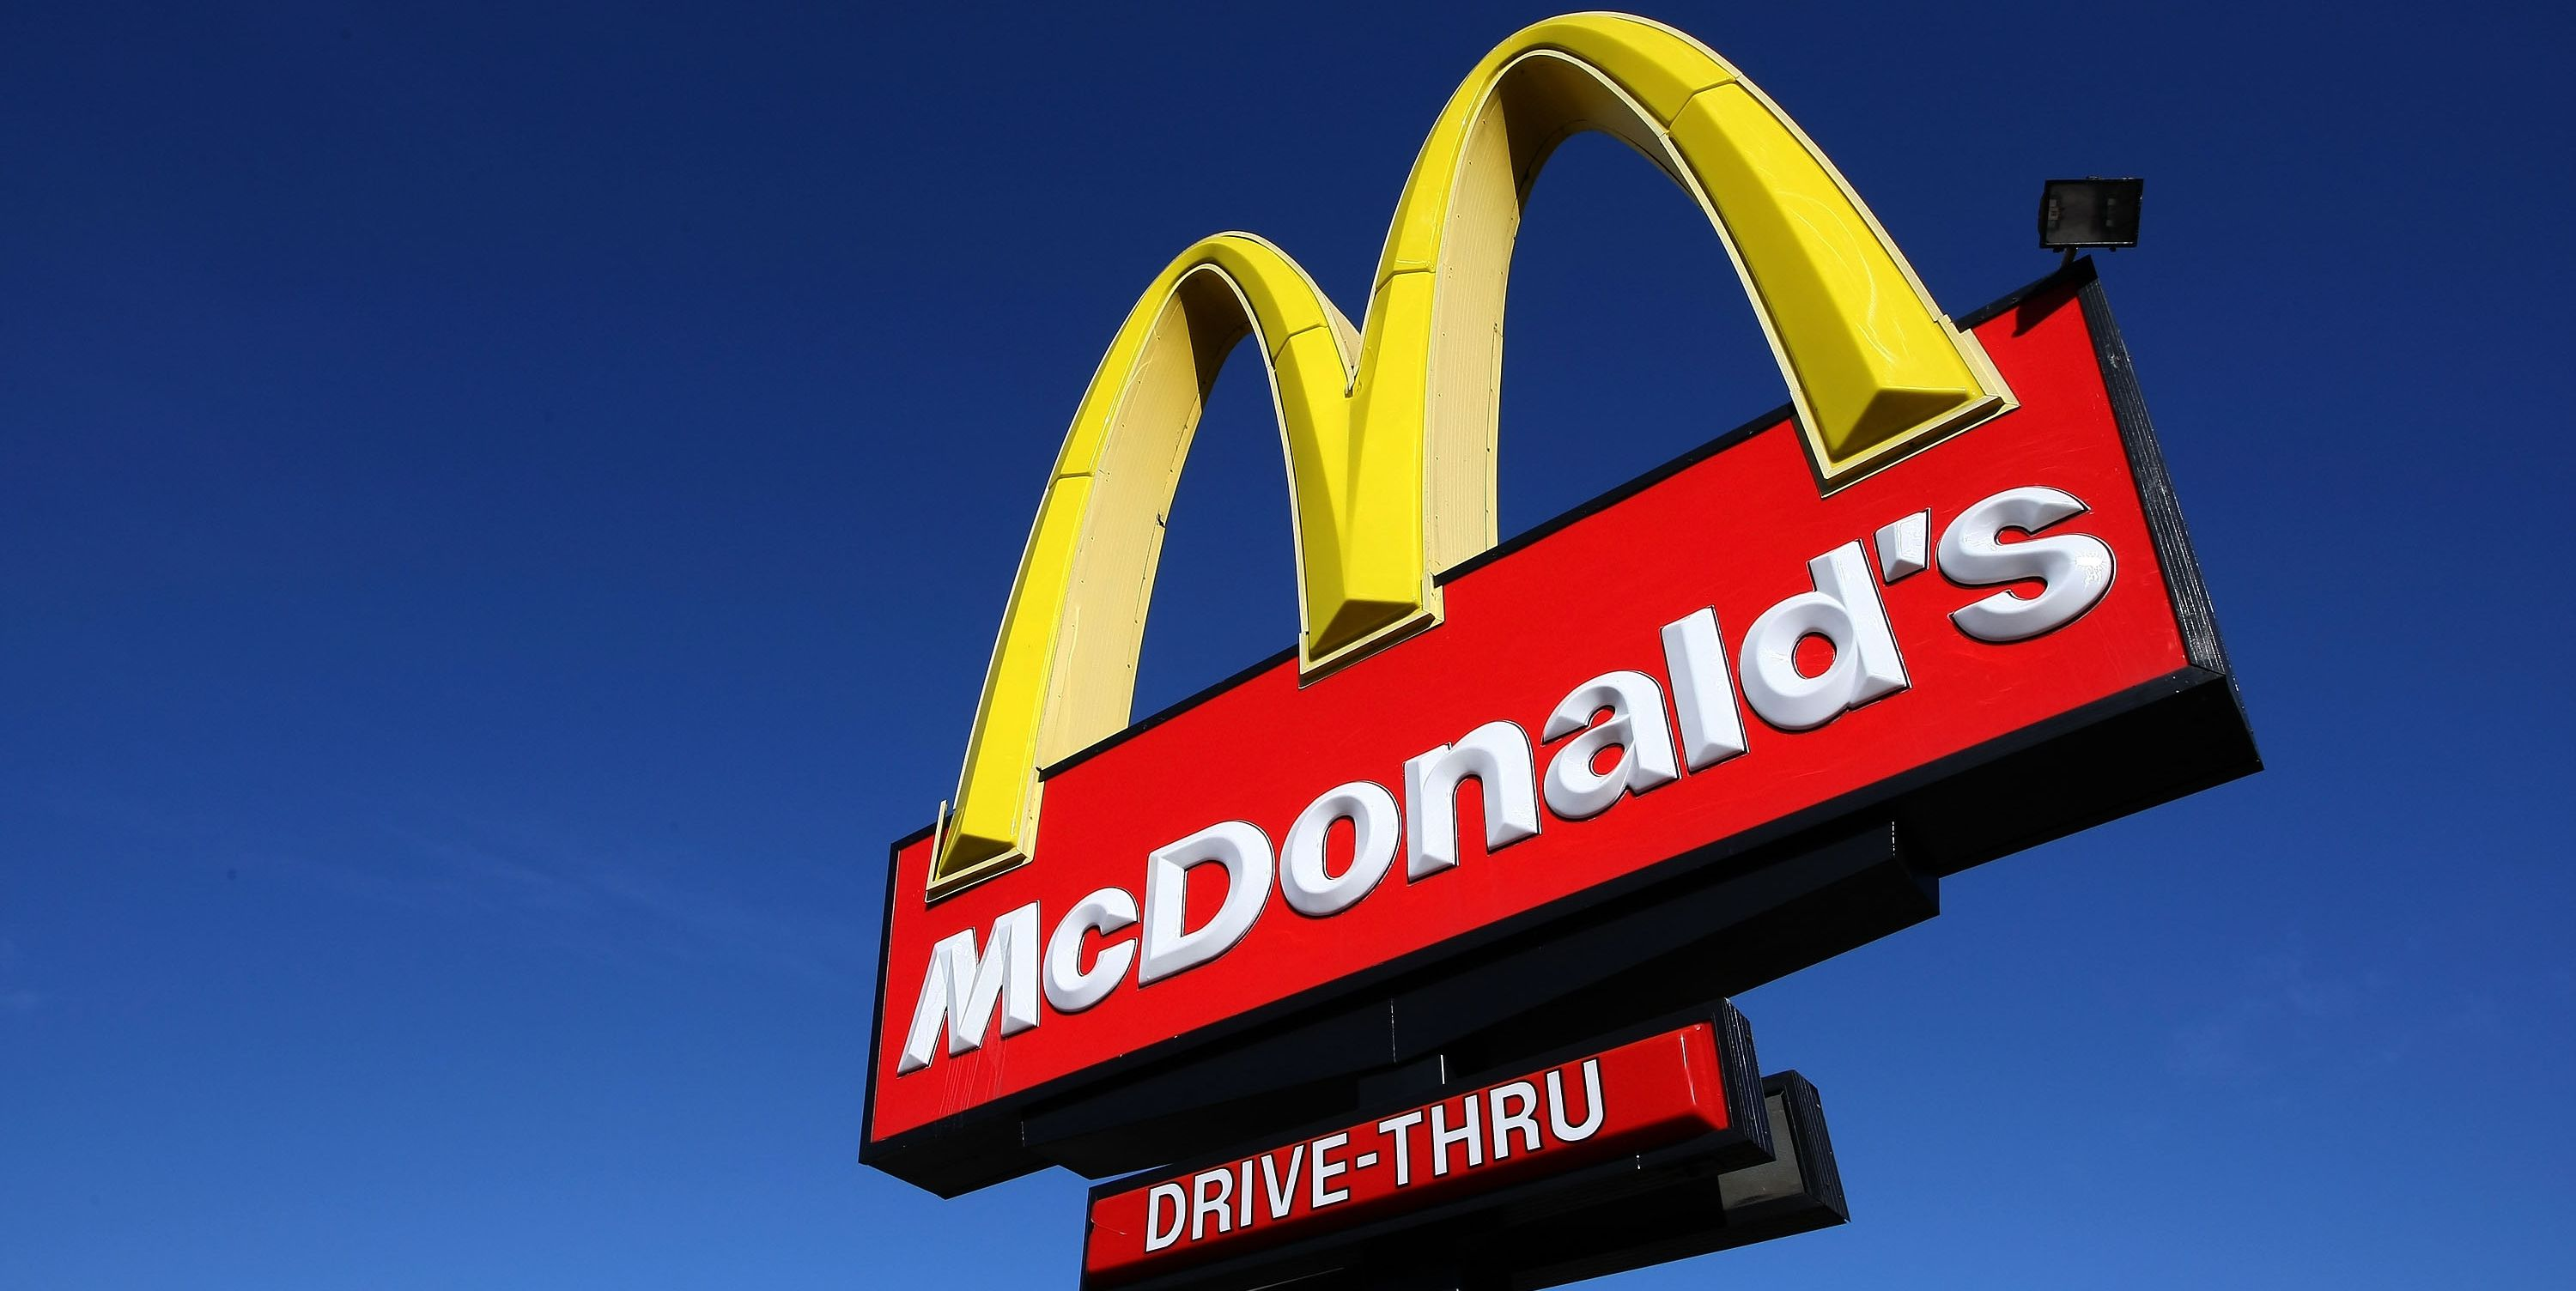 How to get half price McDonald's forever